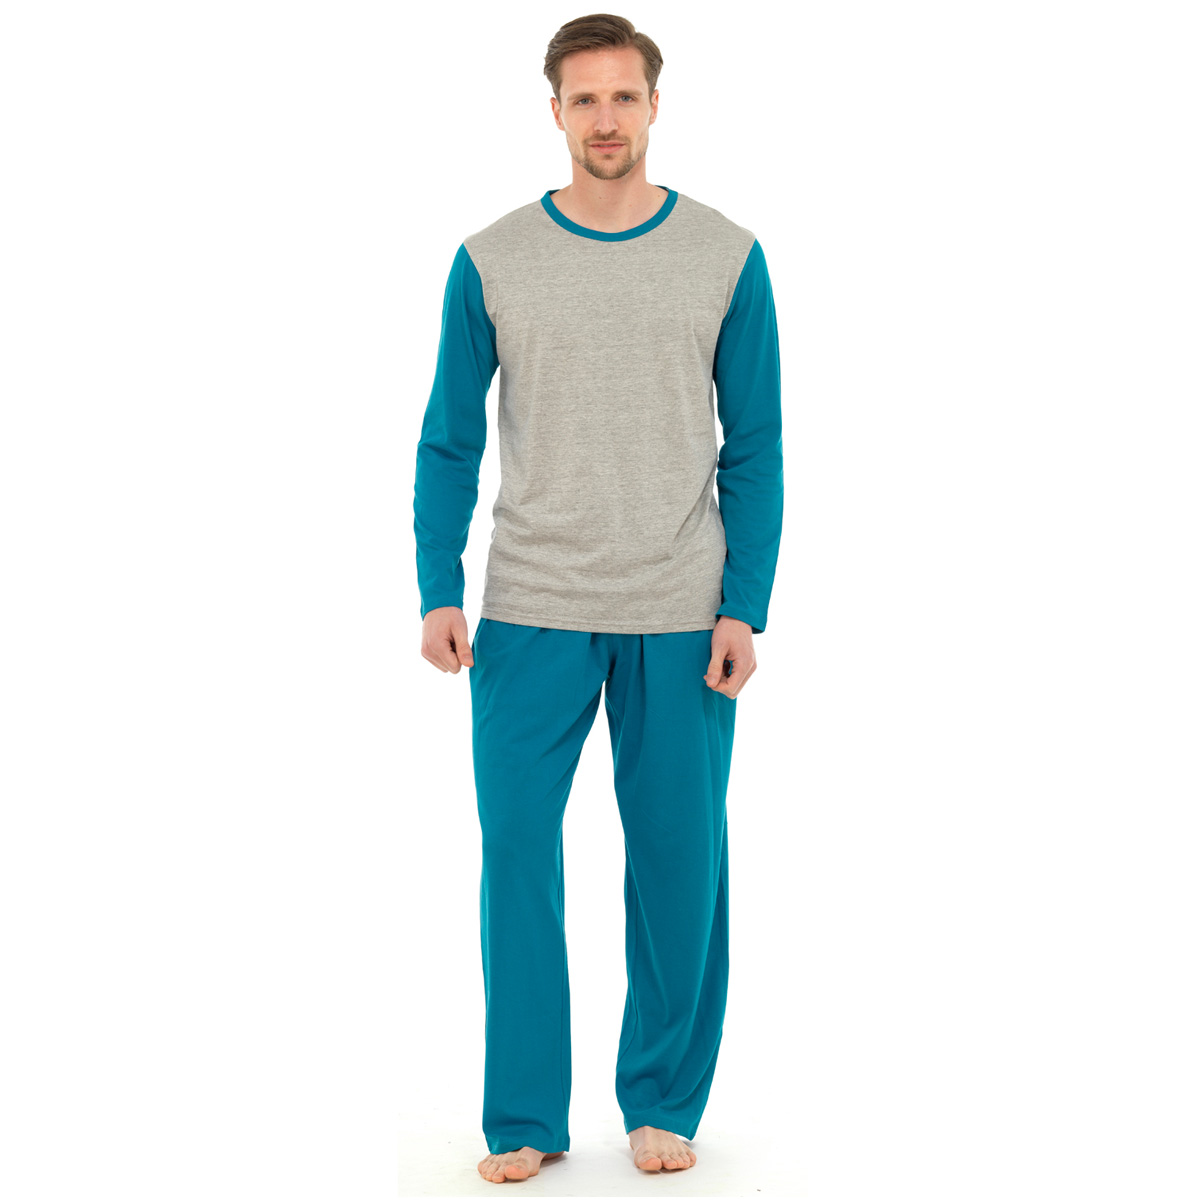 Browse Our Men's Lounge Sets Including Brands Such As Denver Hayes. Shop Lounge Sets For Men Here. | Mark's.